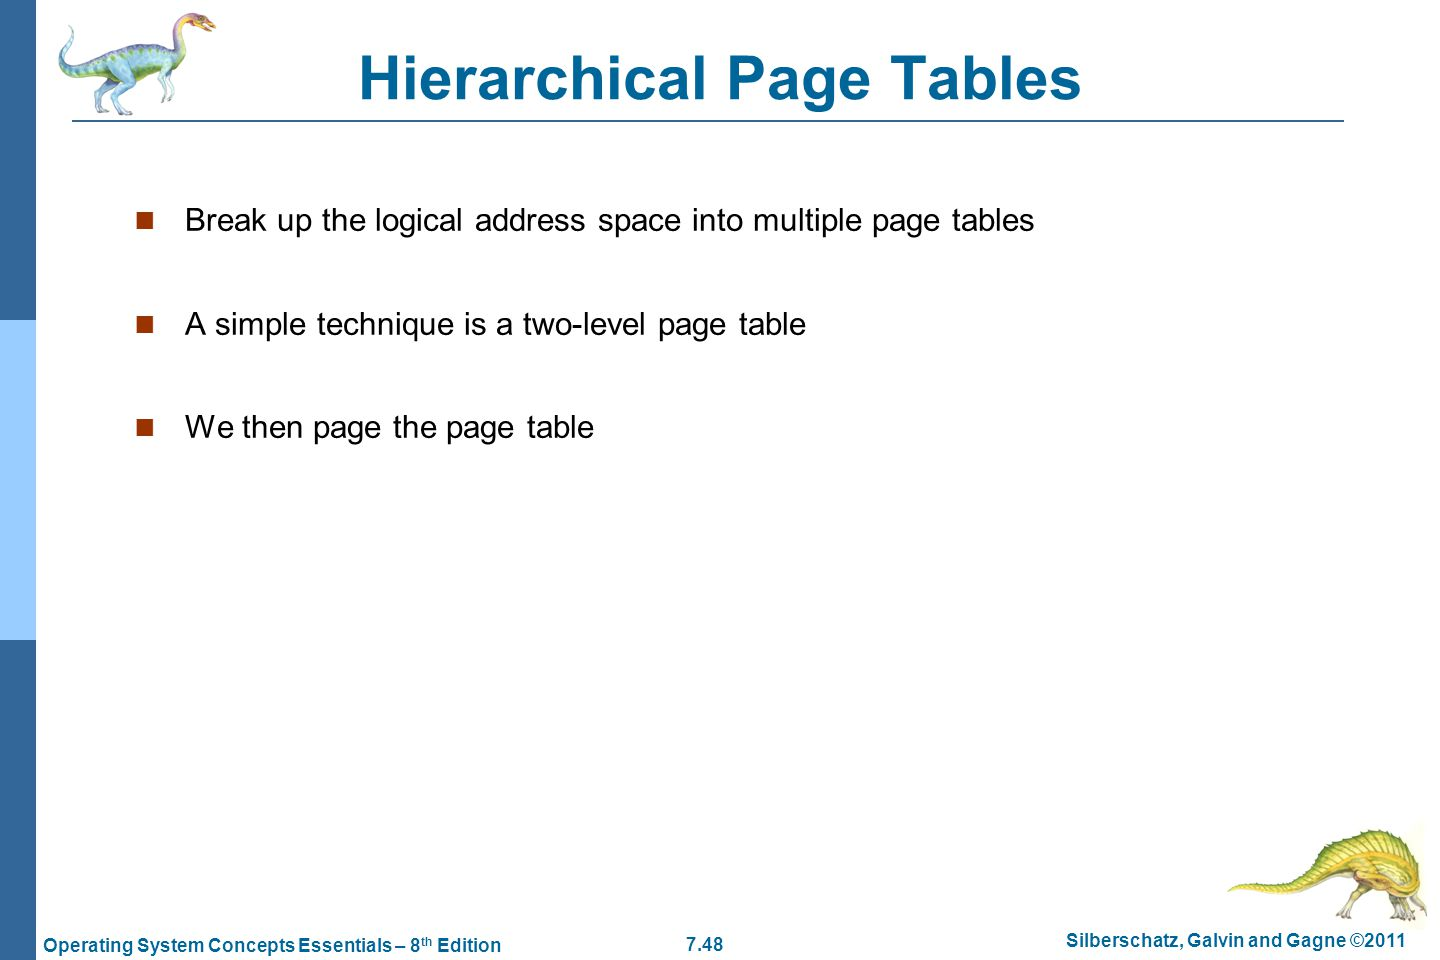 7.48 Silberschatz, Galvin and Gagne ©2011 Operating System Concepts Essentials – 8 th Edition Hierarchical Page Tables Break up the logical address space into multiple page tables A simple technique is a two-level page table We then page the page table